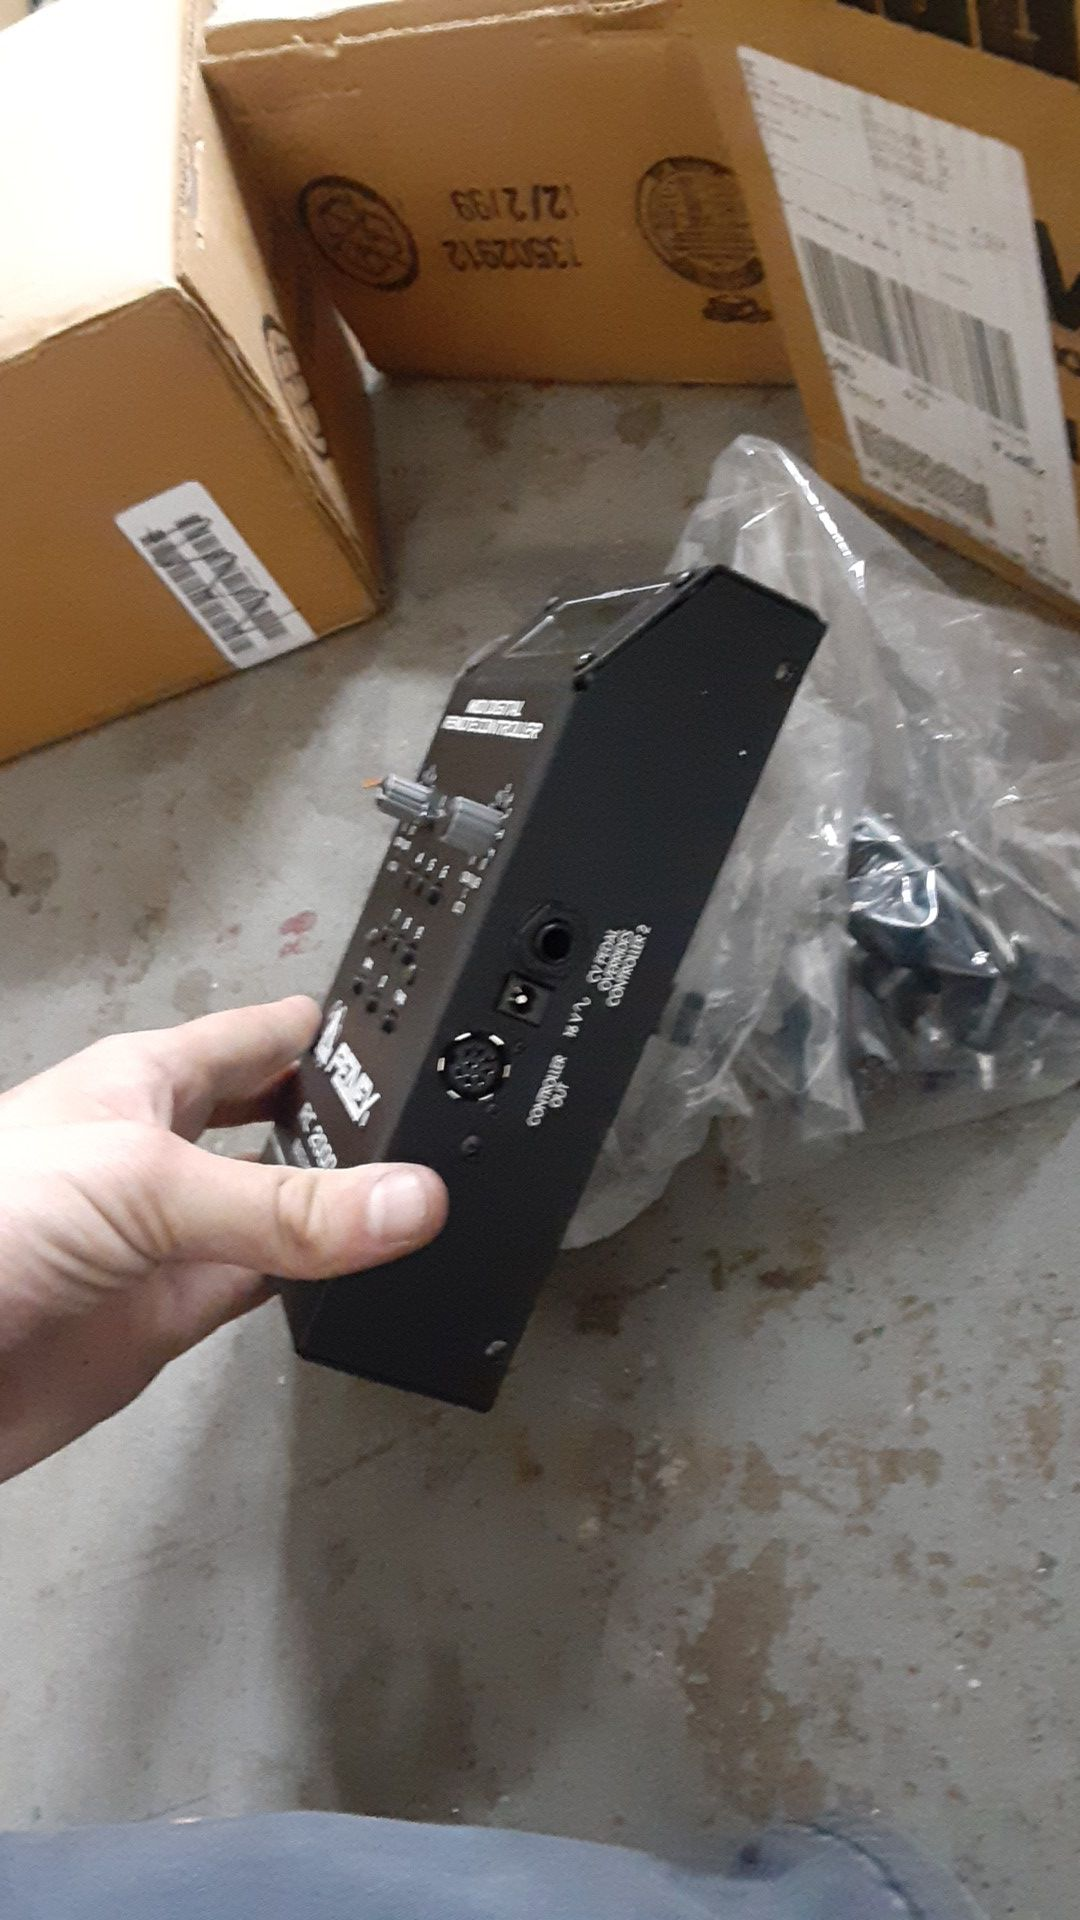 3 Brand New Peavy rc 2000 controllers